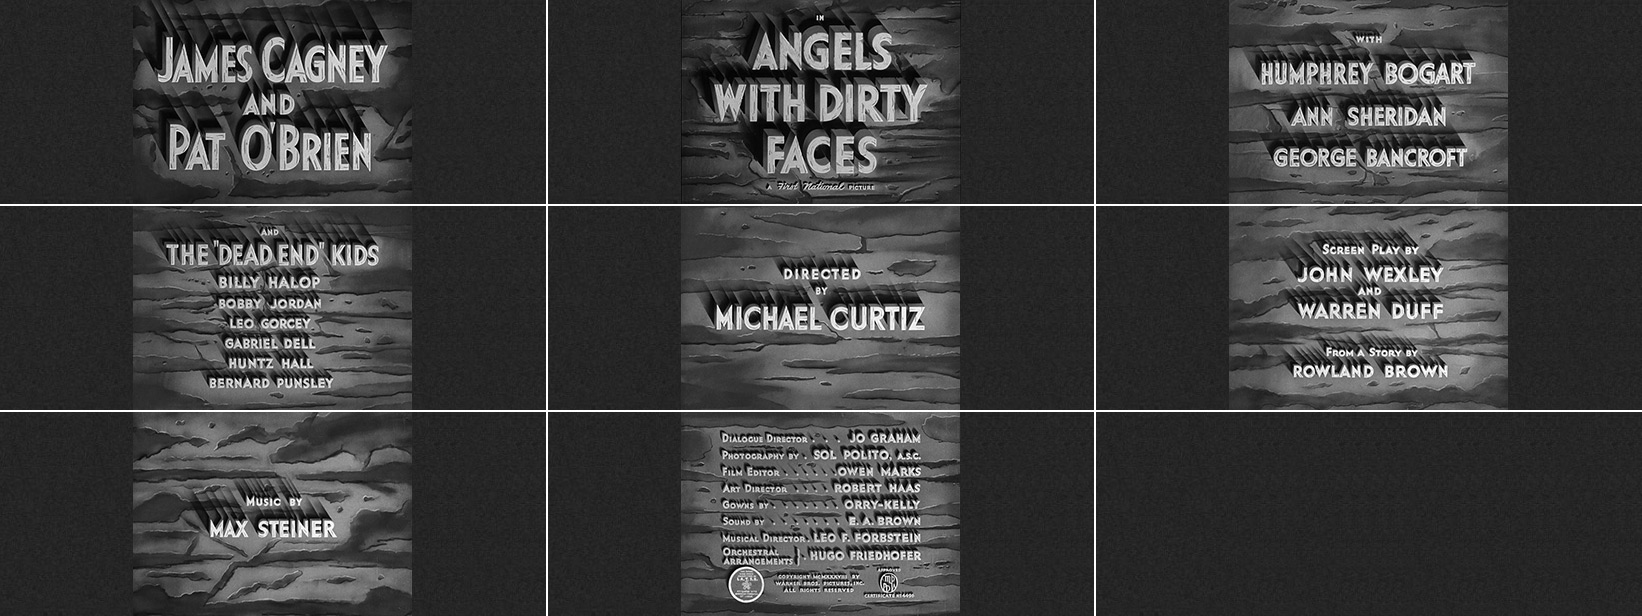 Michael Curtiz: Angels with dirty faces (1938) title sequence